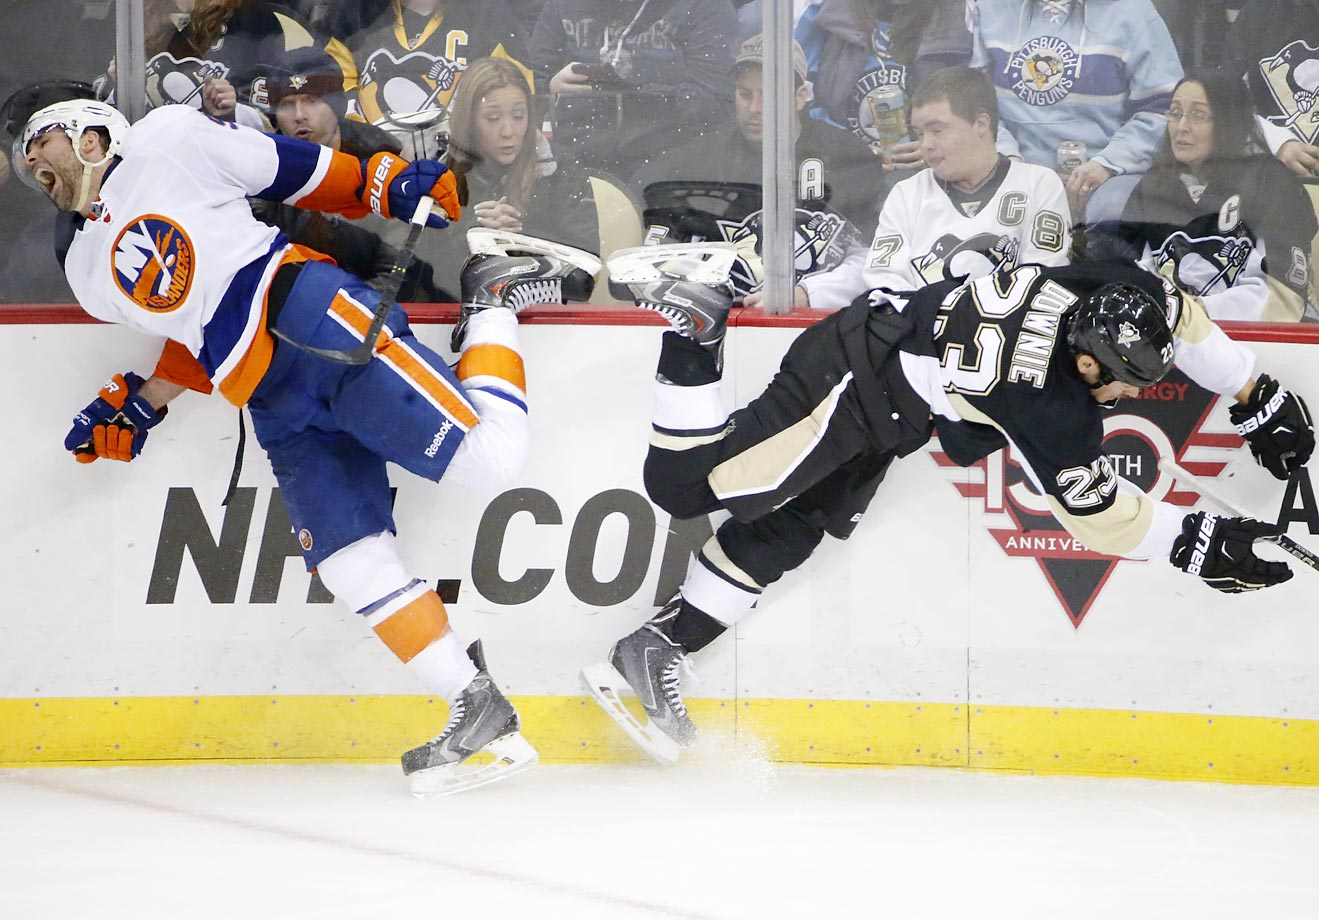 Steve Downie of the Penguins collides with Johnny Boychuk of the Islanders.